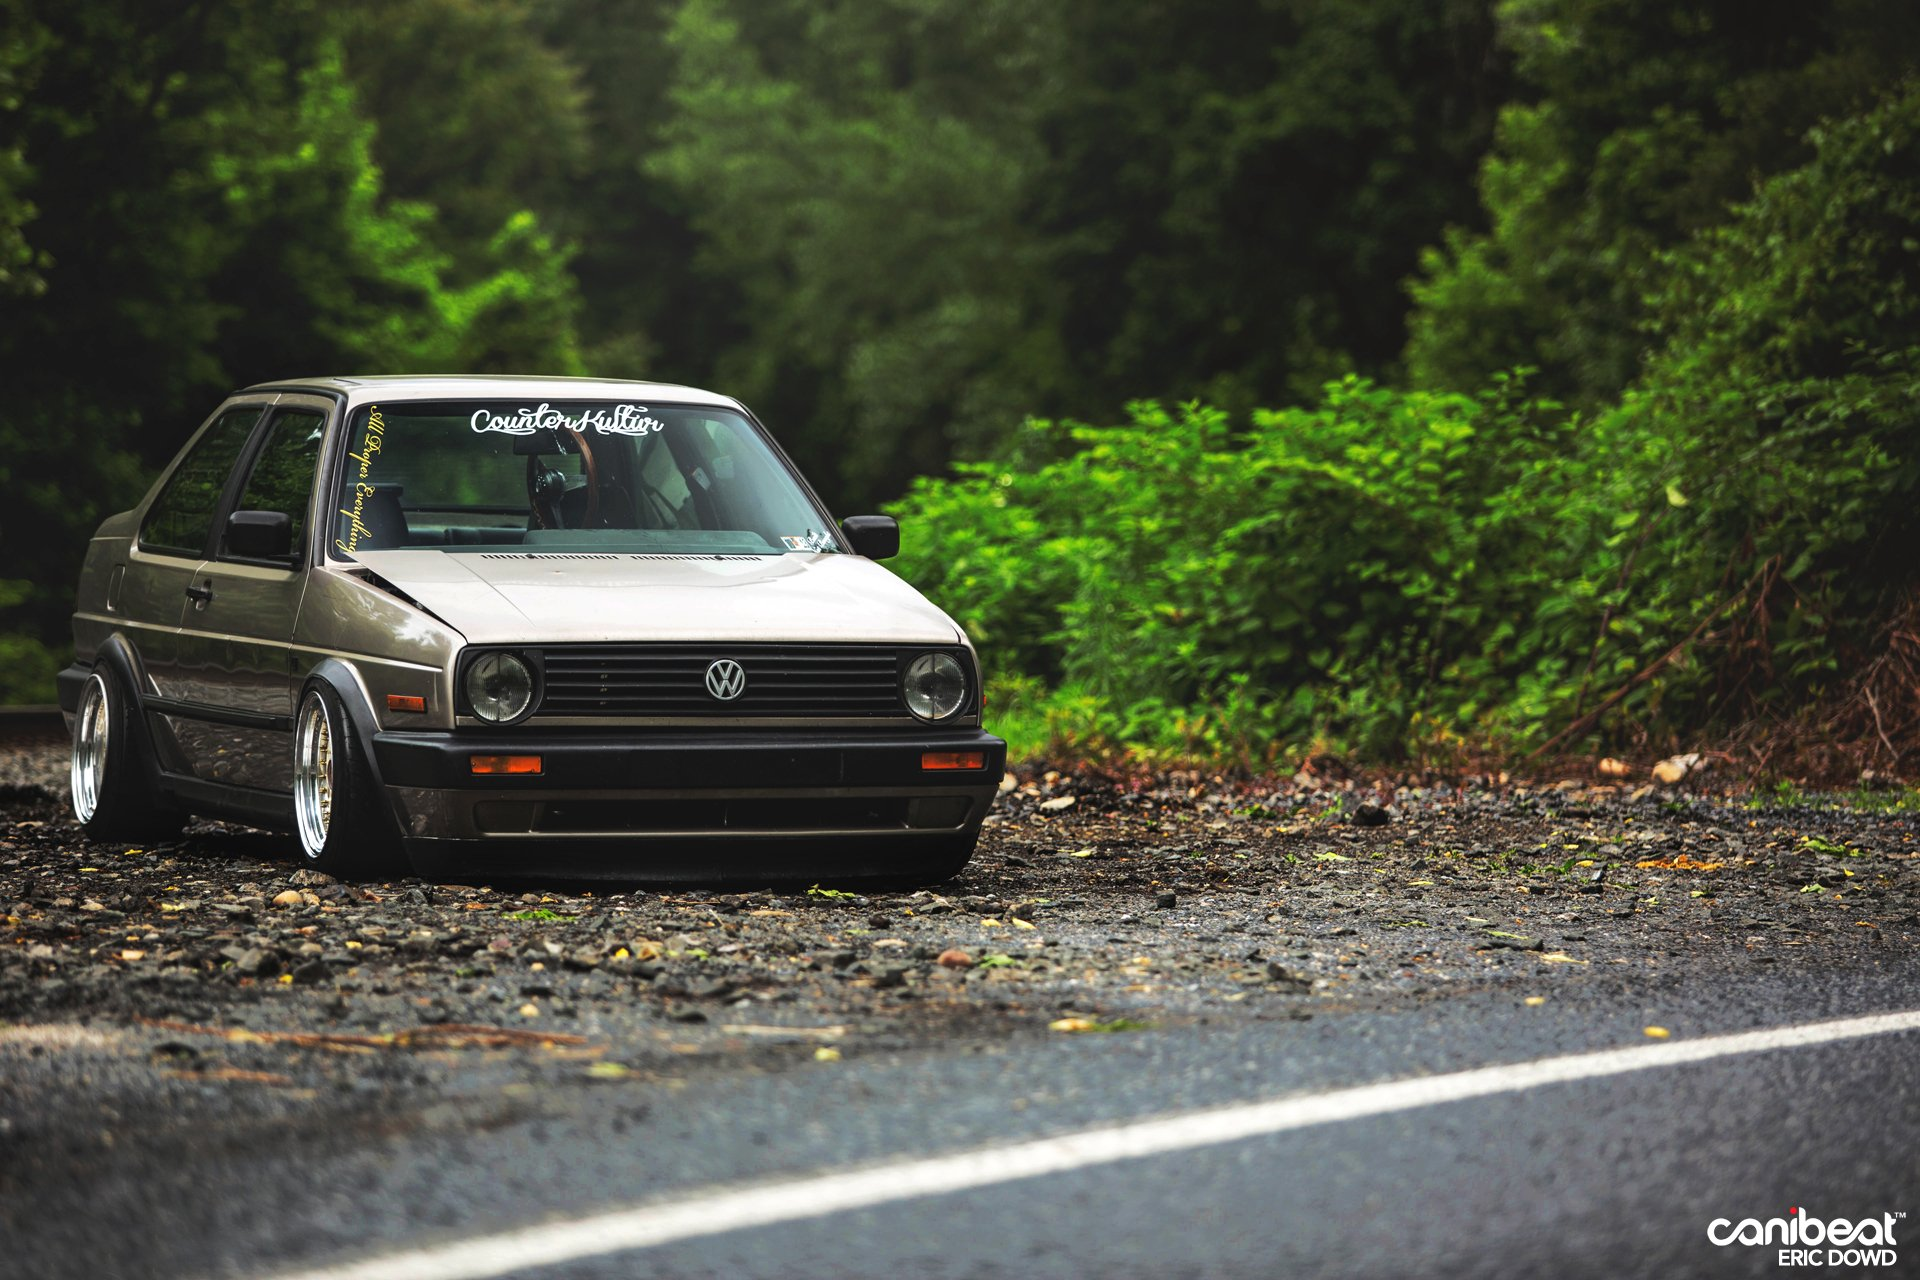 MK2 Volkswagen Jetta Coupe tuning custom wallpaper 1920x1280 1920x1280